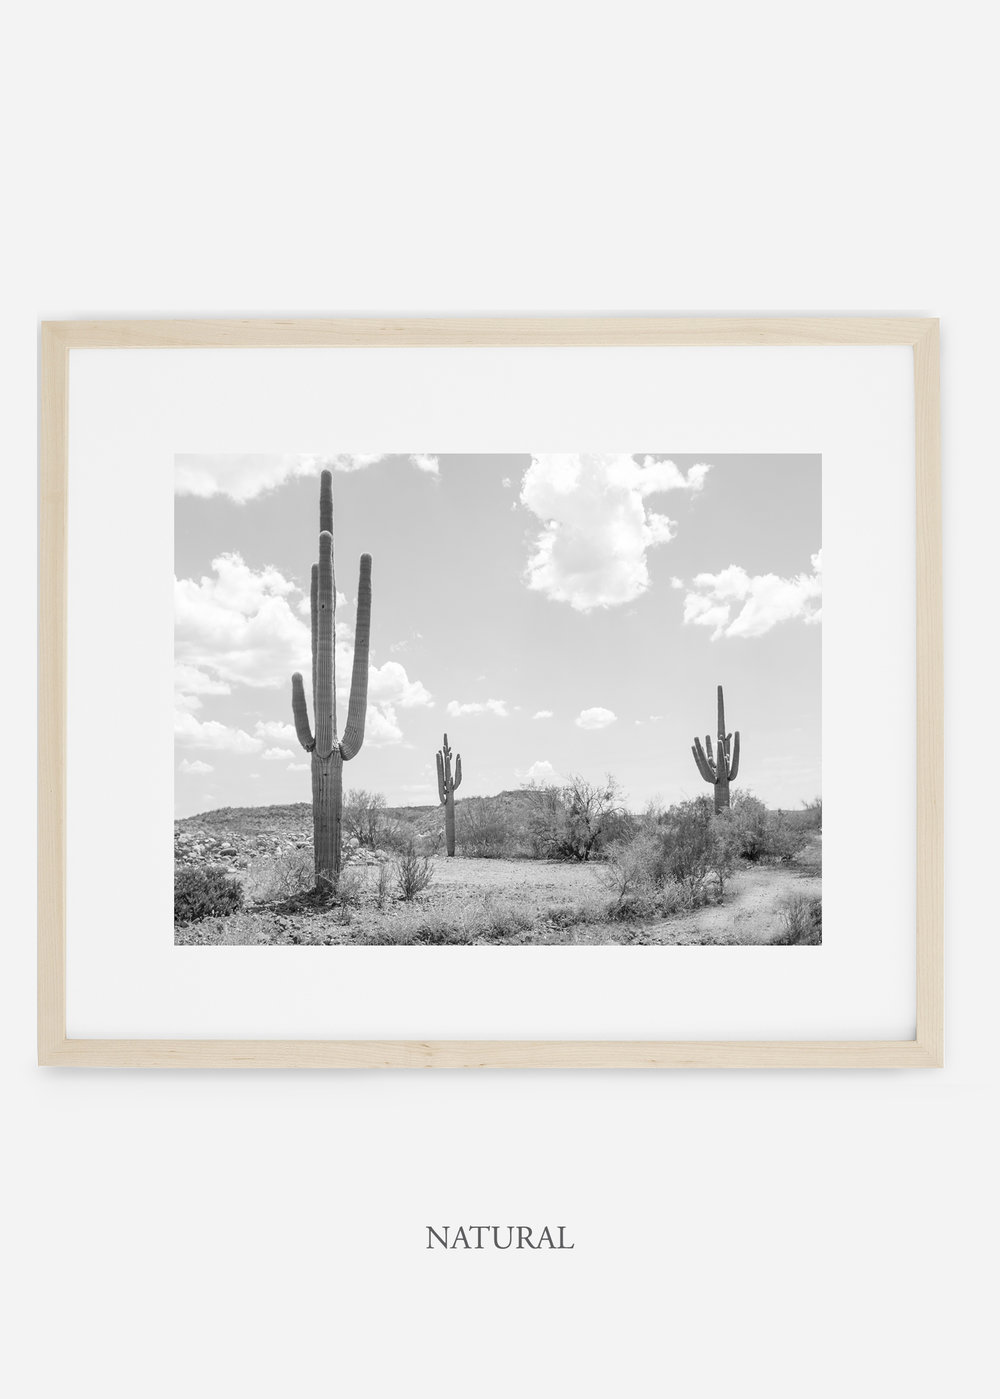 wildercalifornia_naturalframe_threesaguaro_cactus_art_interiordesign.jpg